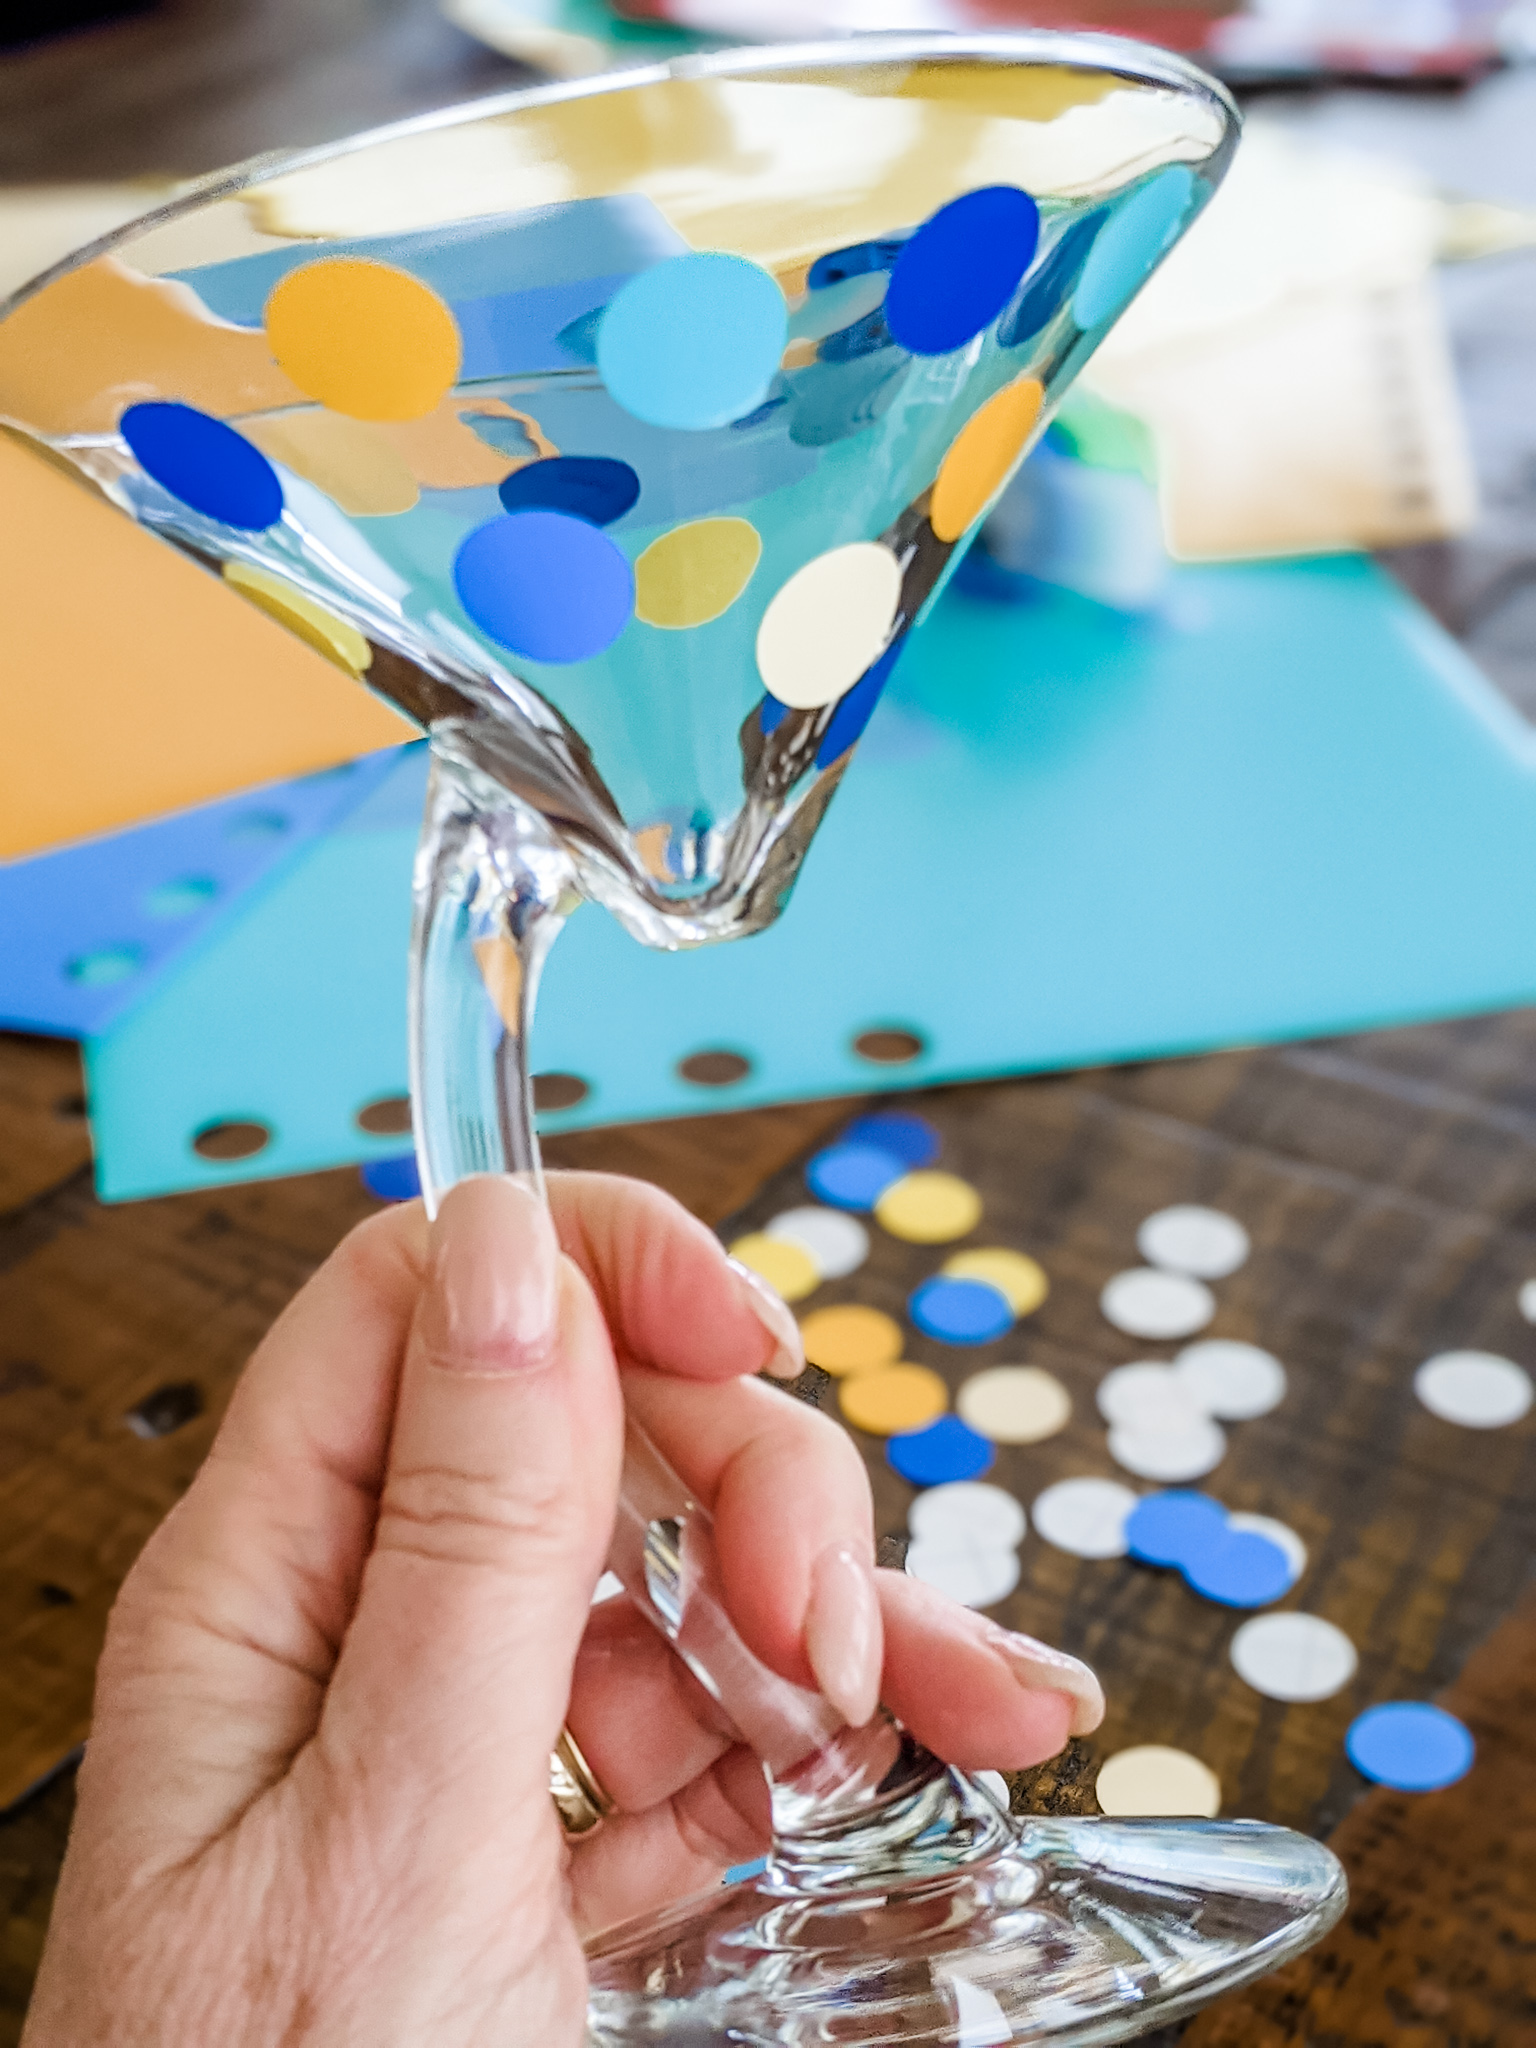 Marie placing the polka dots on the cup of the martini glass